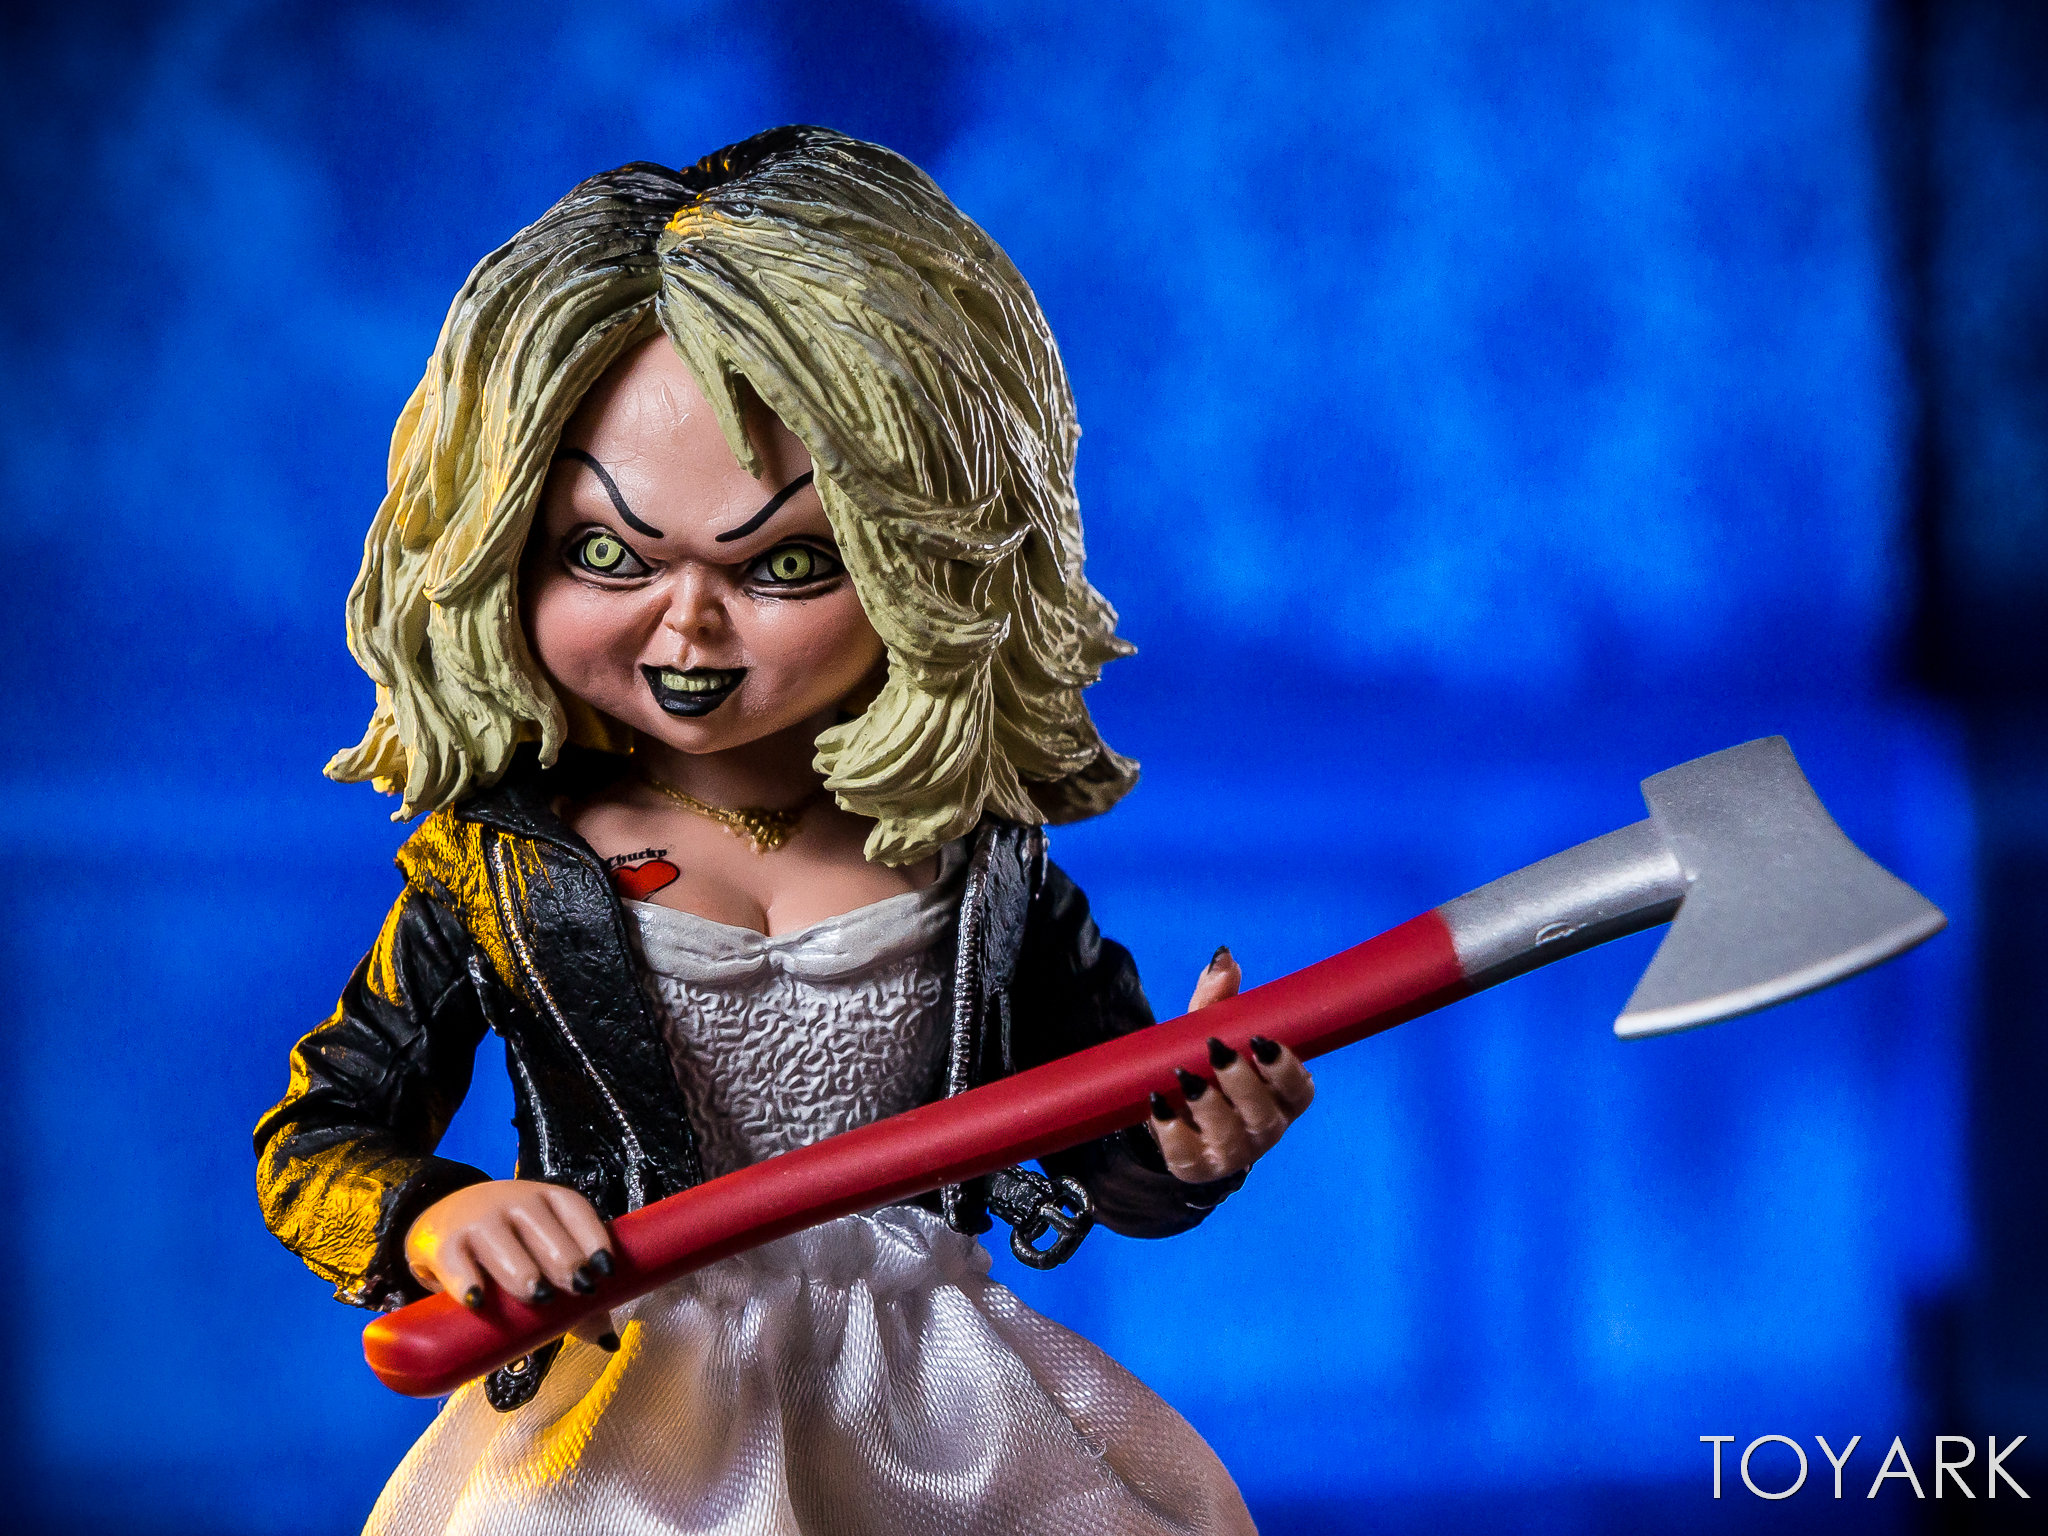 https://news.toyark.com/wp-content/uploads/sites/4/2019/01/Bride-of-Chucky-NECA-Set-036.jpg